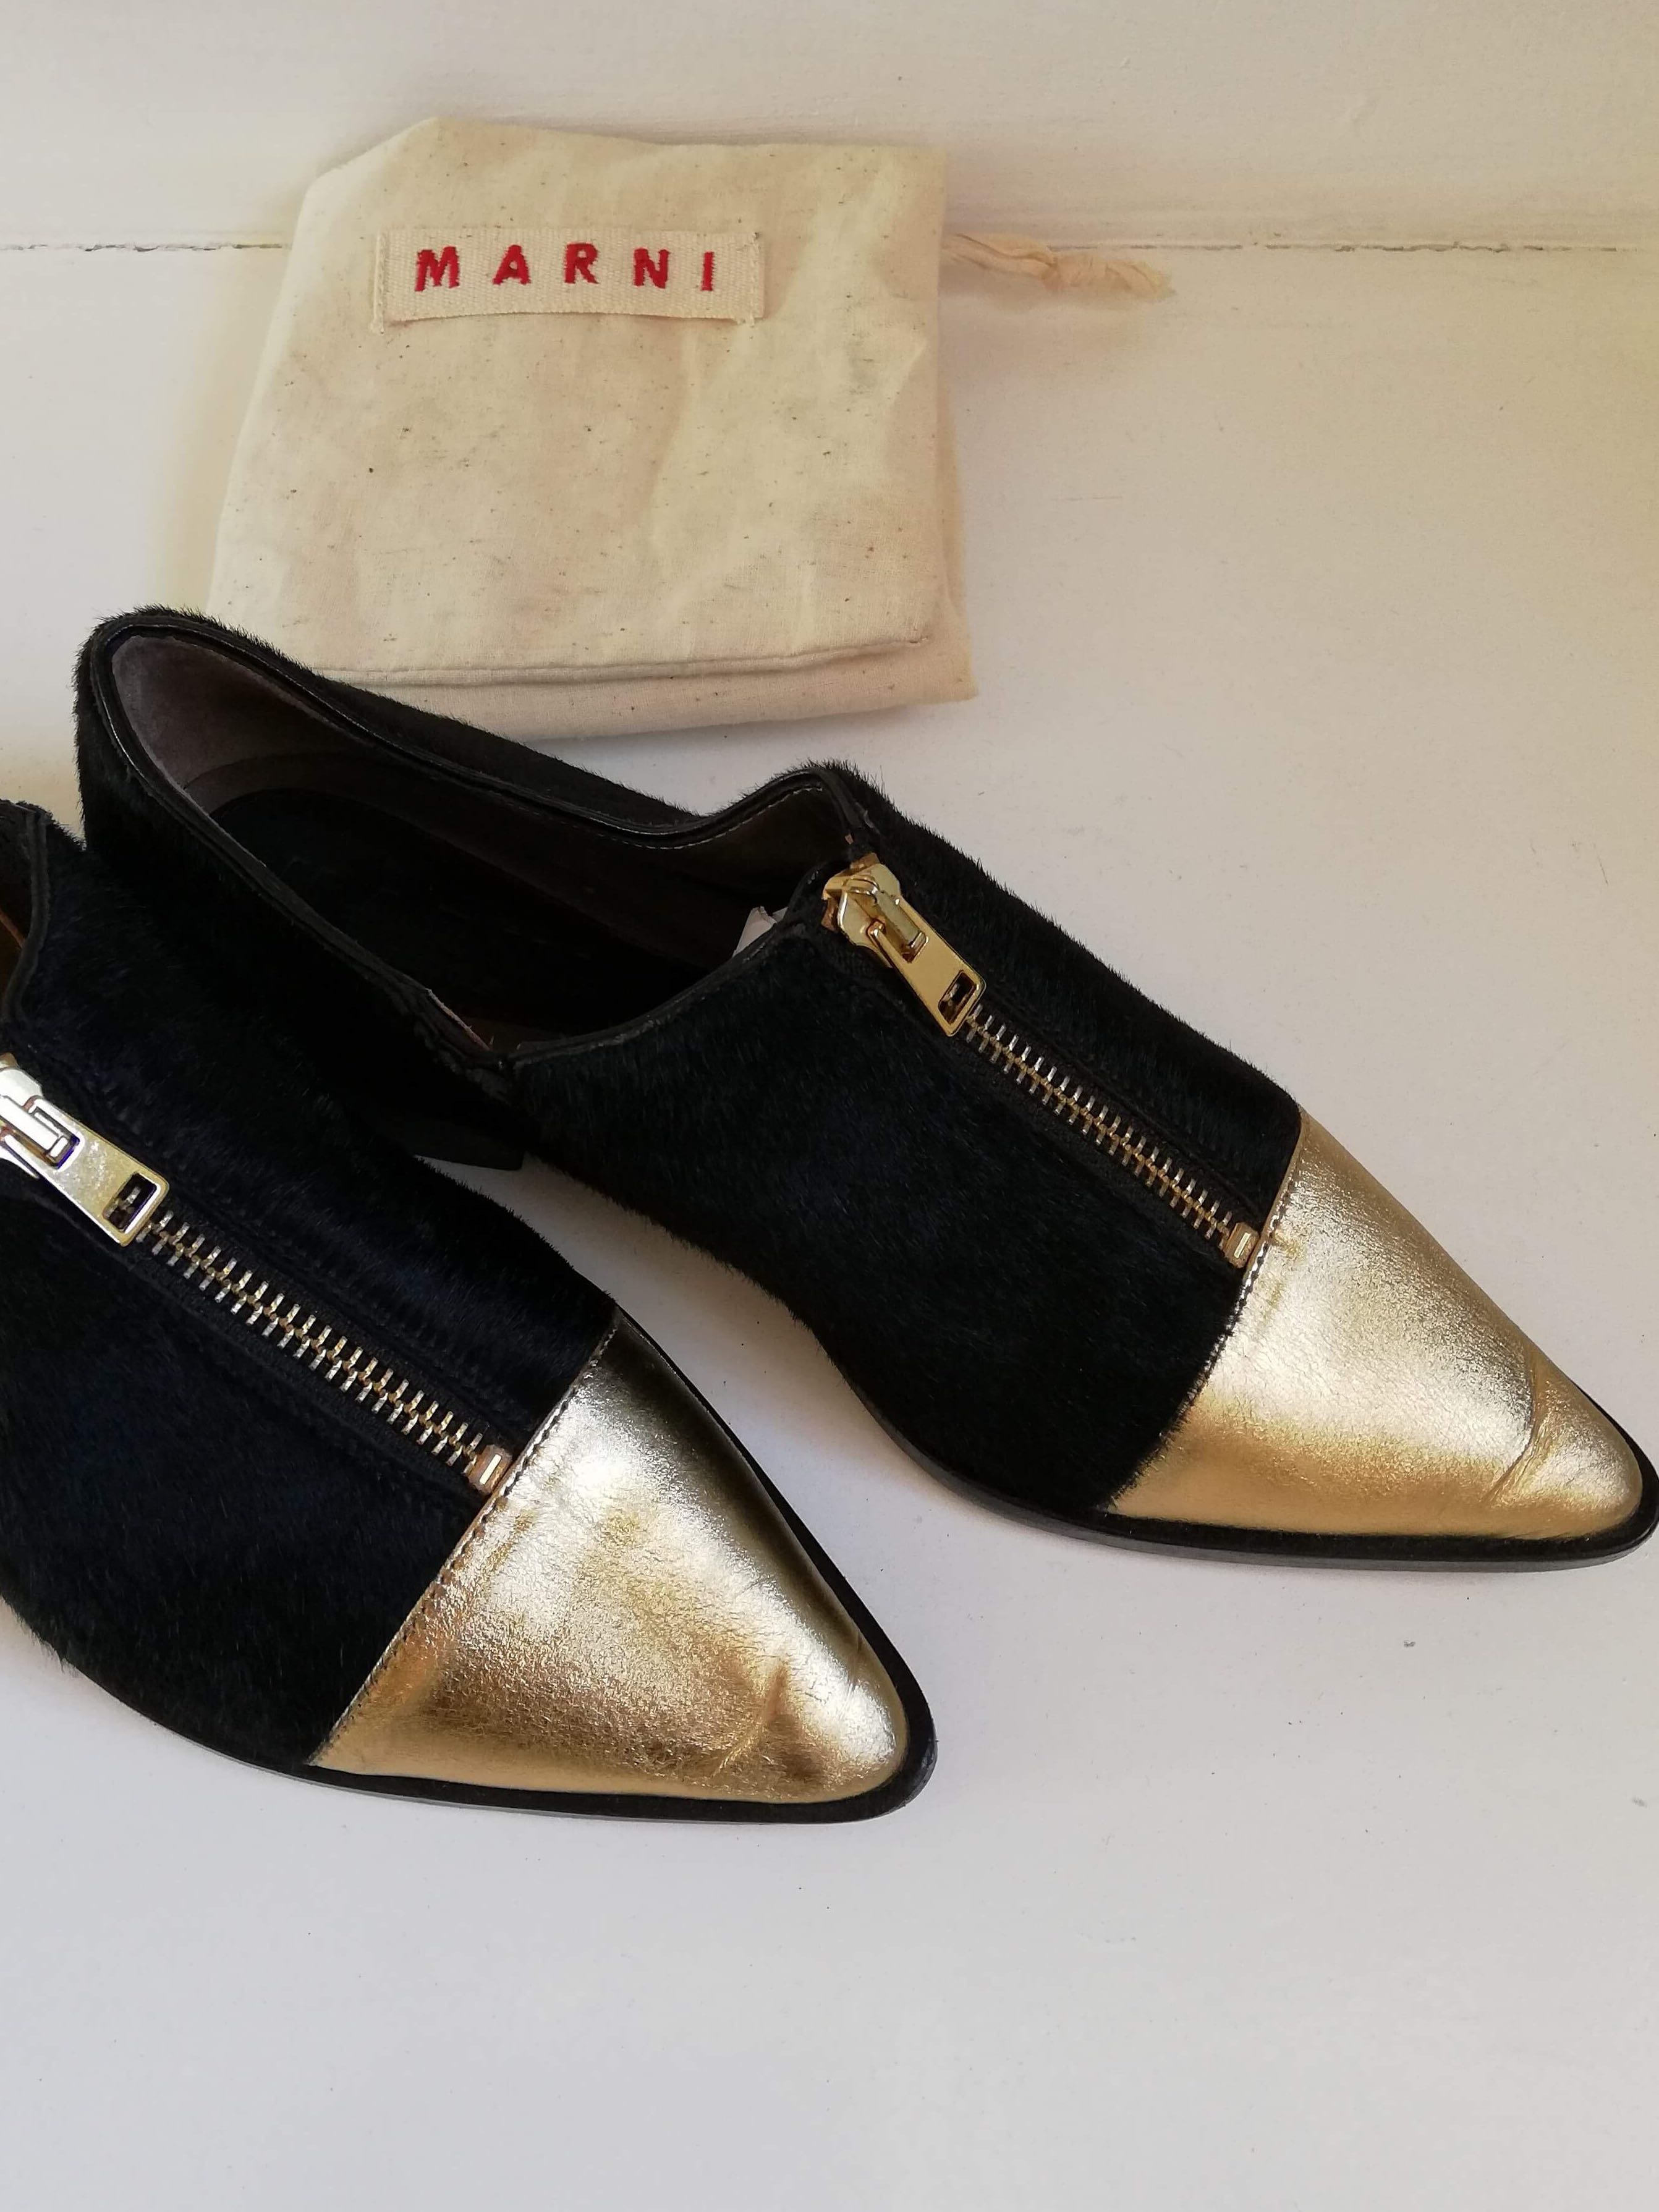 9877ef87eed MARNI Pony Hair Pointed Cap Toe Women s Loafers